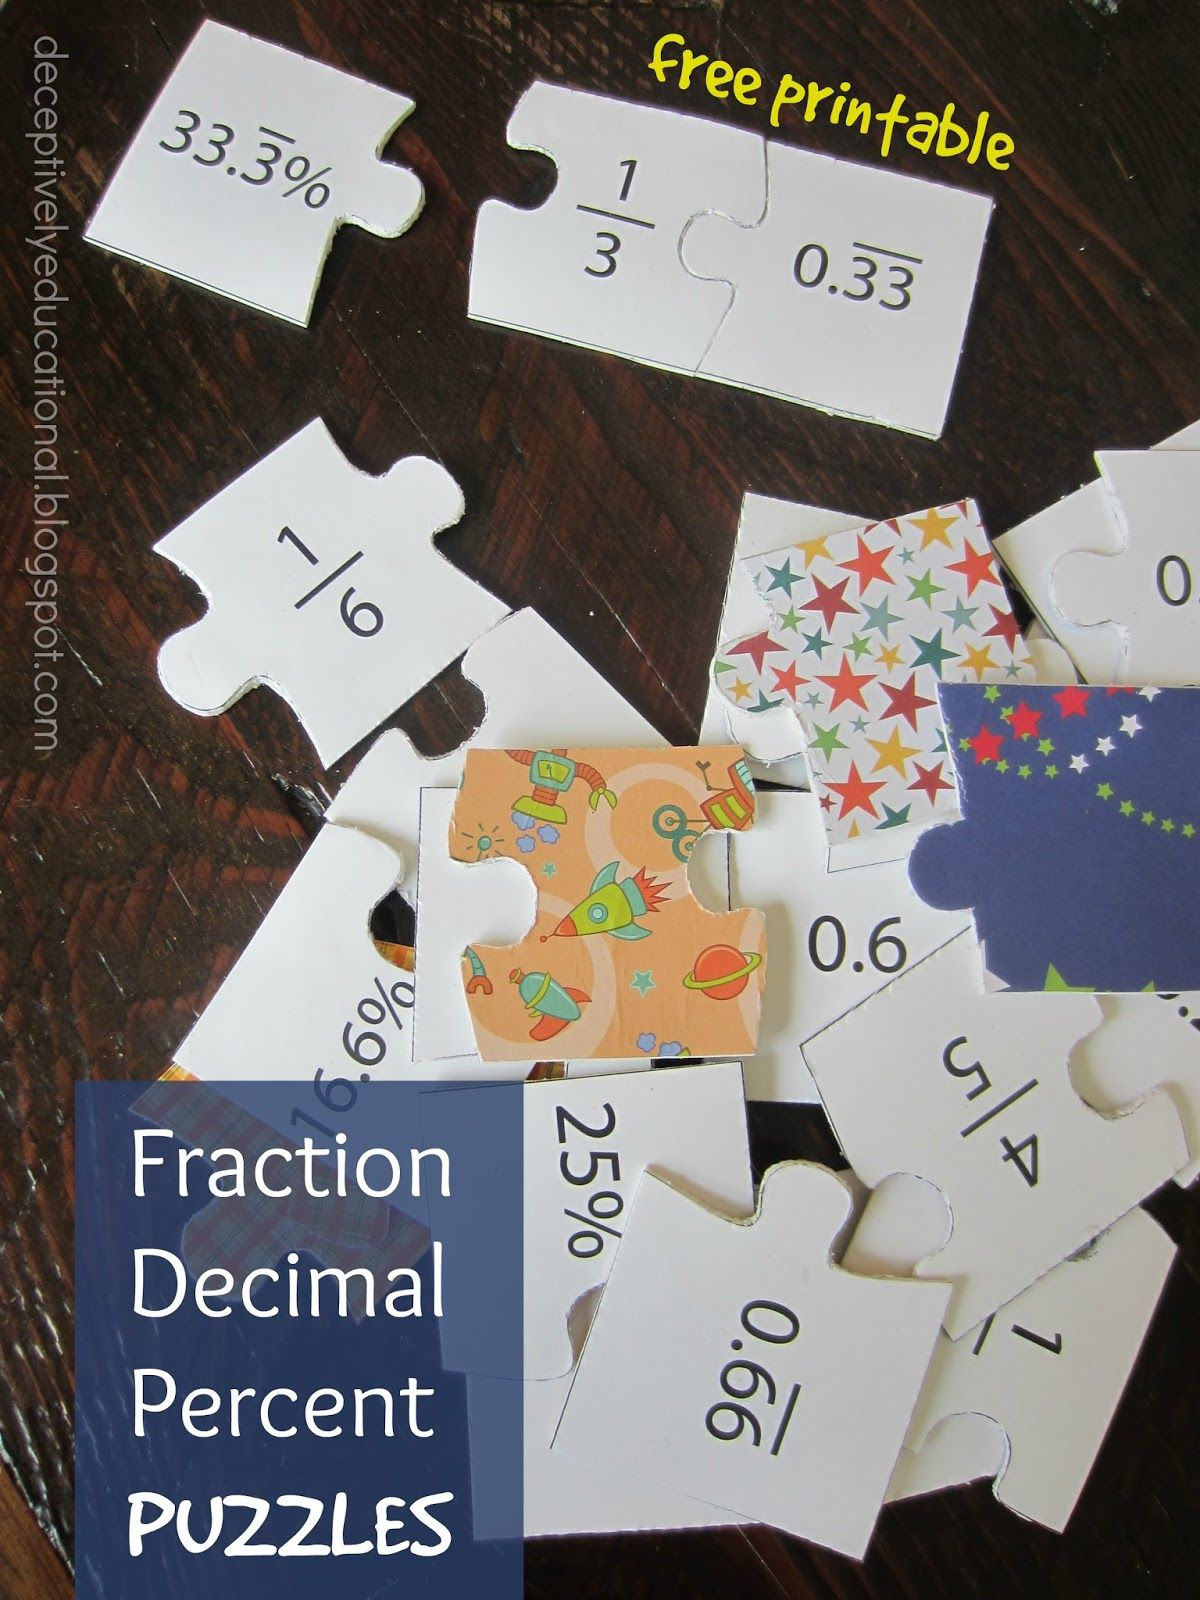 Fraction Decimal And Percent Puzzles Free Printable